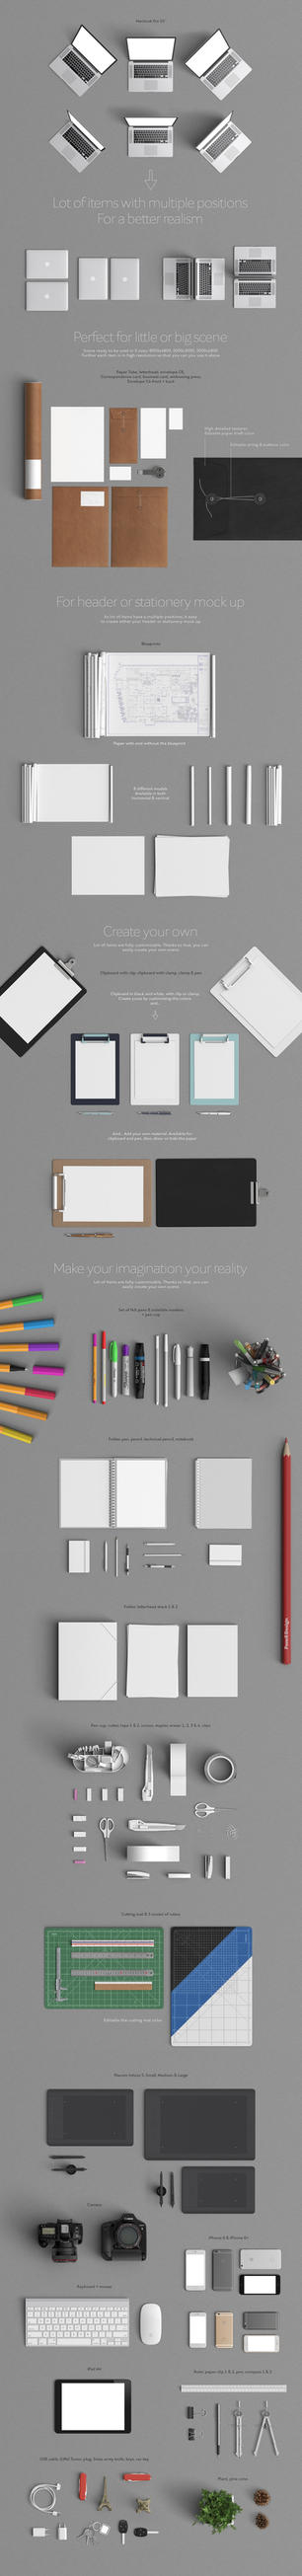 Stationery Mock Up Creator by sandracz